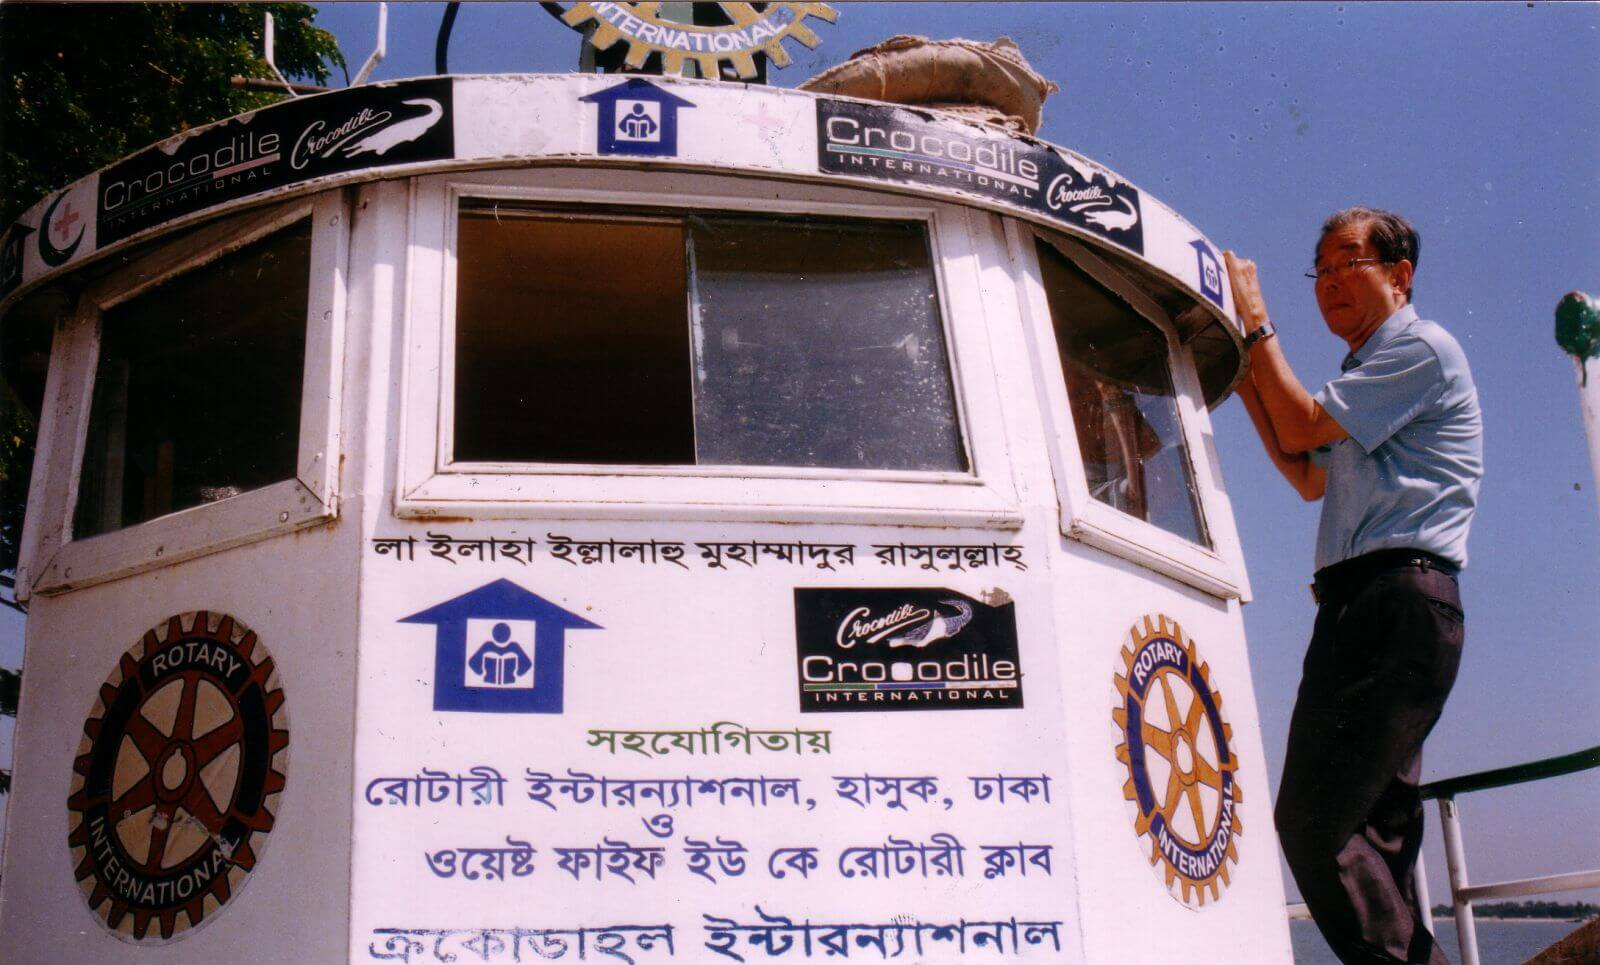 Crocodile donates a medical boat serving the poor and needy in Bangladesh